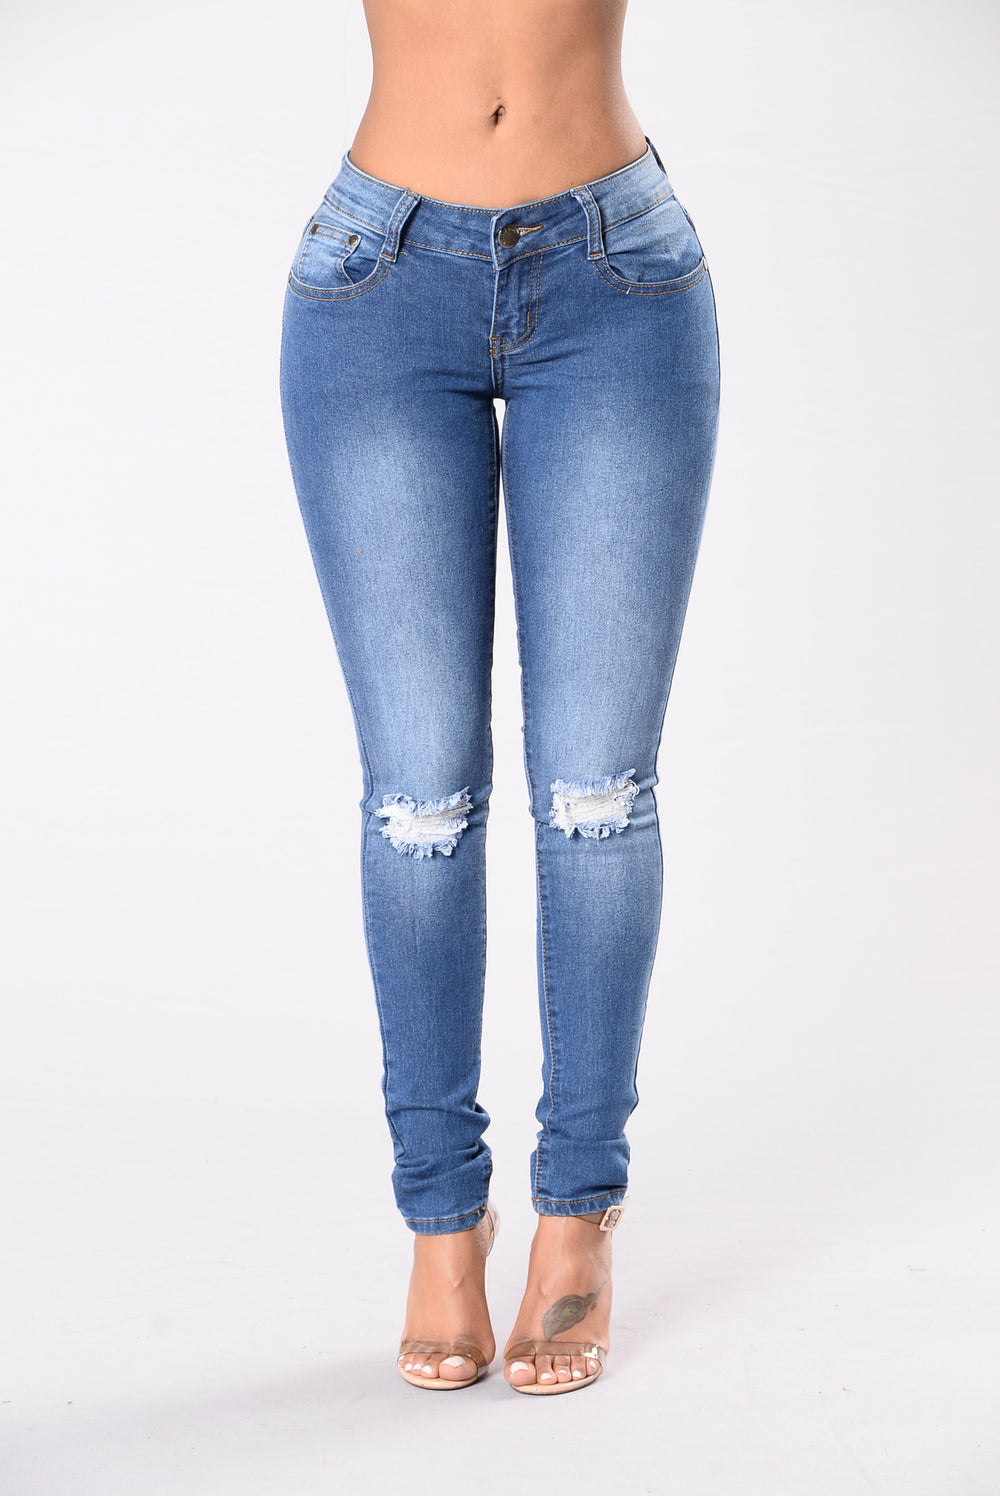 Levi's Jeans Relaxed Fit are go-to jeans for country boys and city Levi's Shop Best Sellers· Deals of the Day· Fast Shipping· Read Ratings & Reviews.